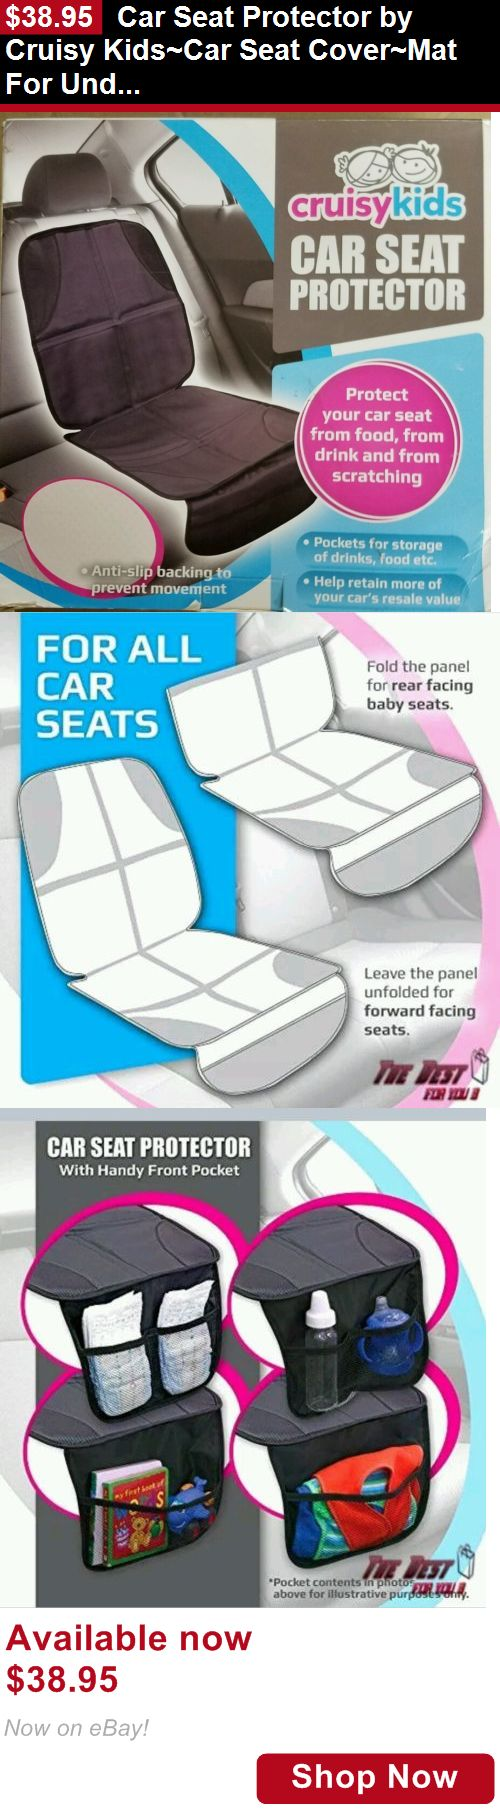 Car Seat Accessories: Car Seat Protector By Cruisy Kids~Car Seat Cover~Mat For Under Car Seats BUY IT NOW ONLY: $38.95